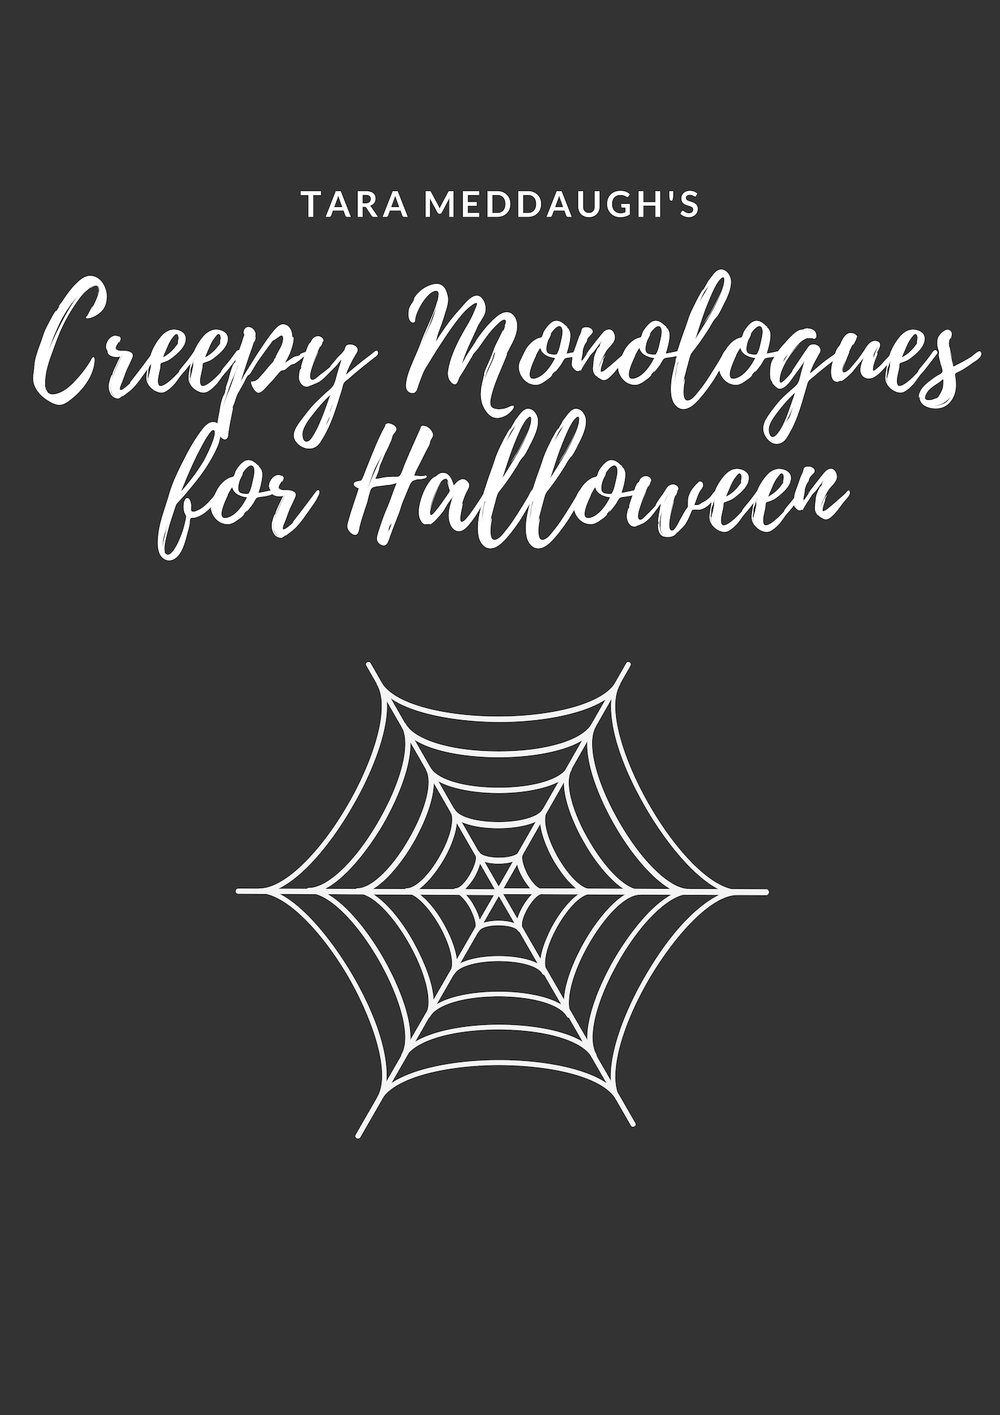 creepy monologues for halloween.jpg